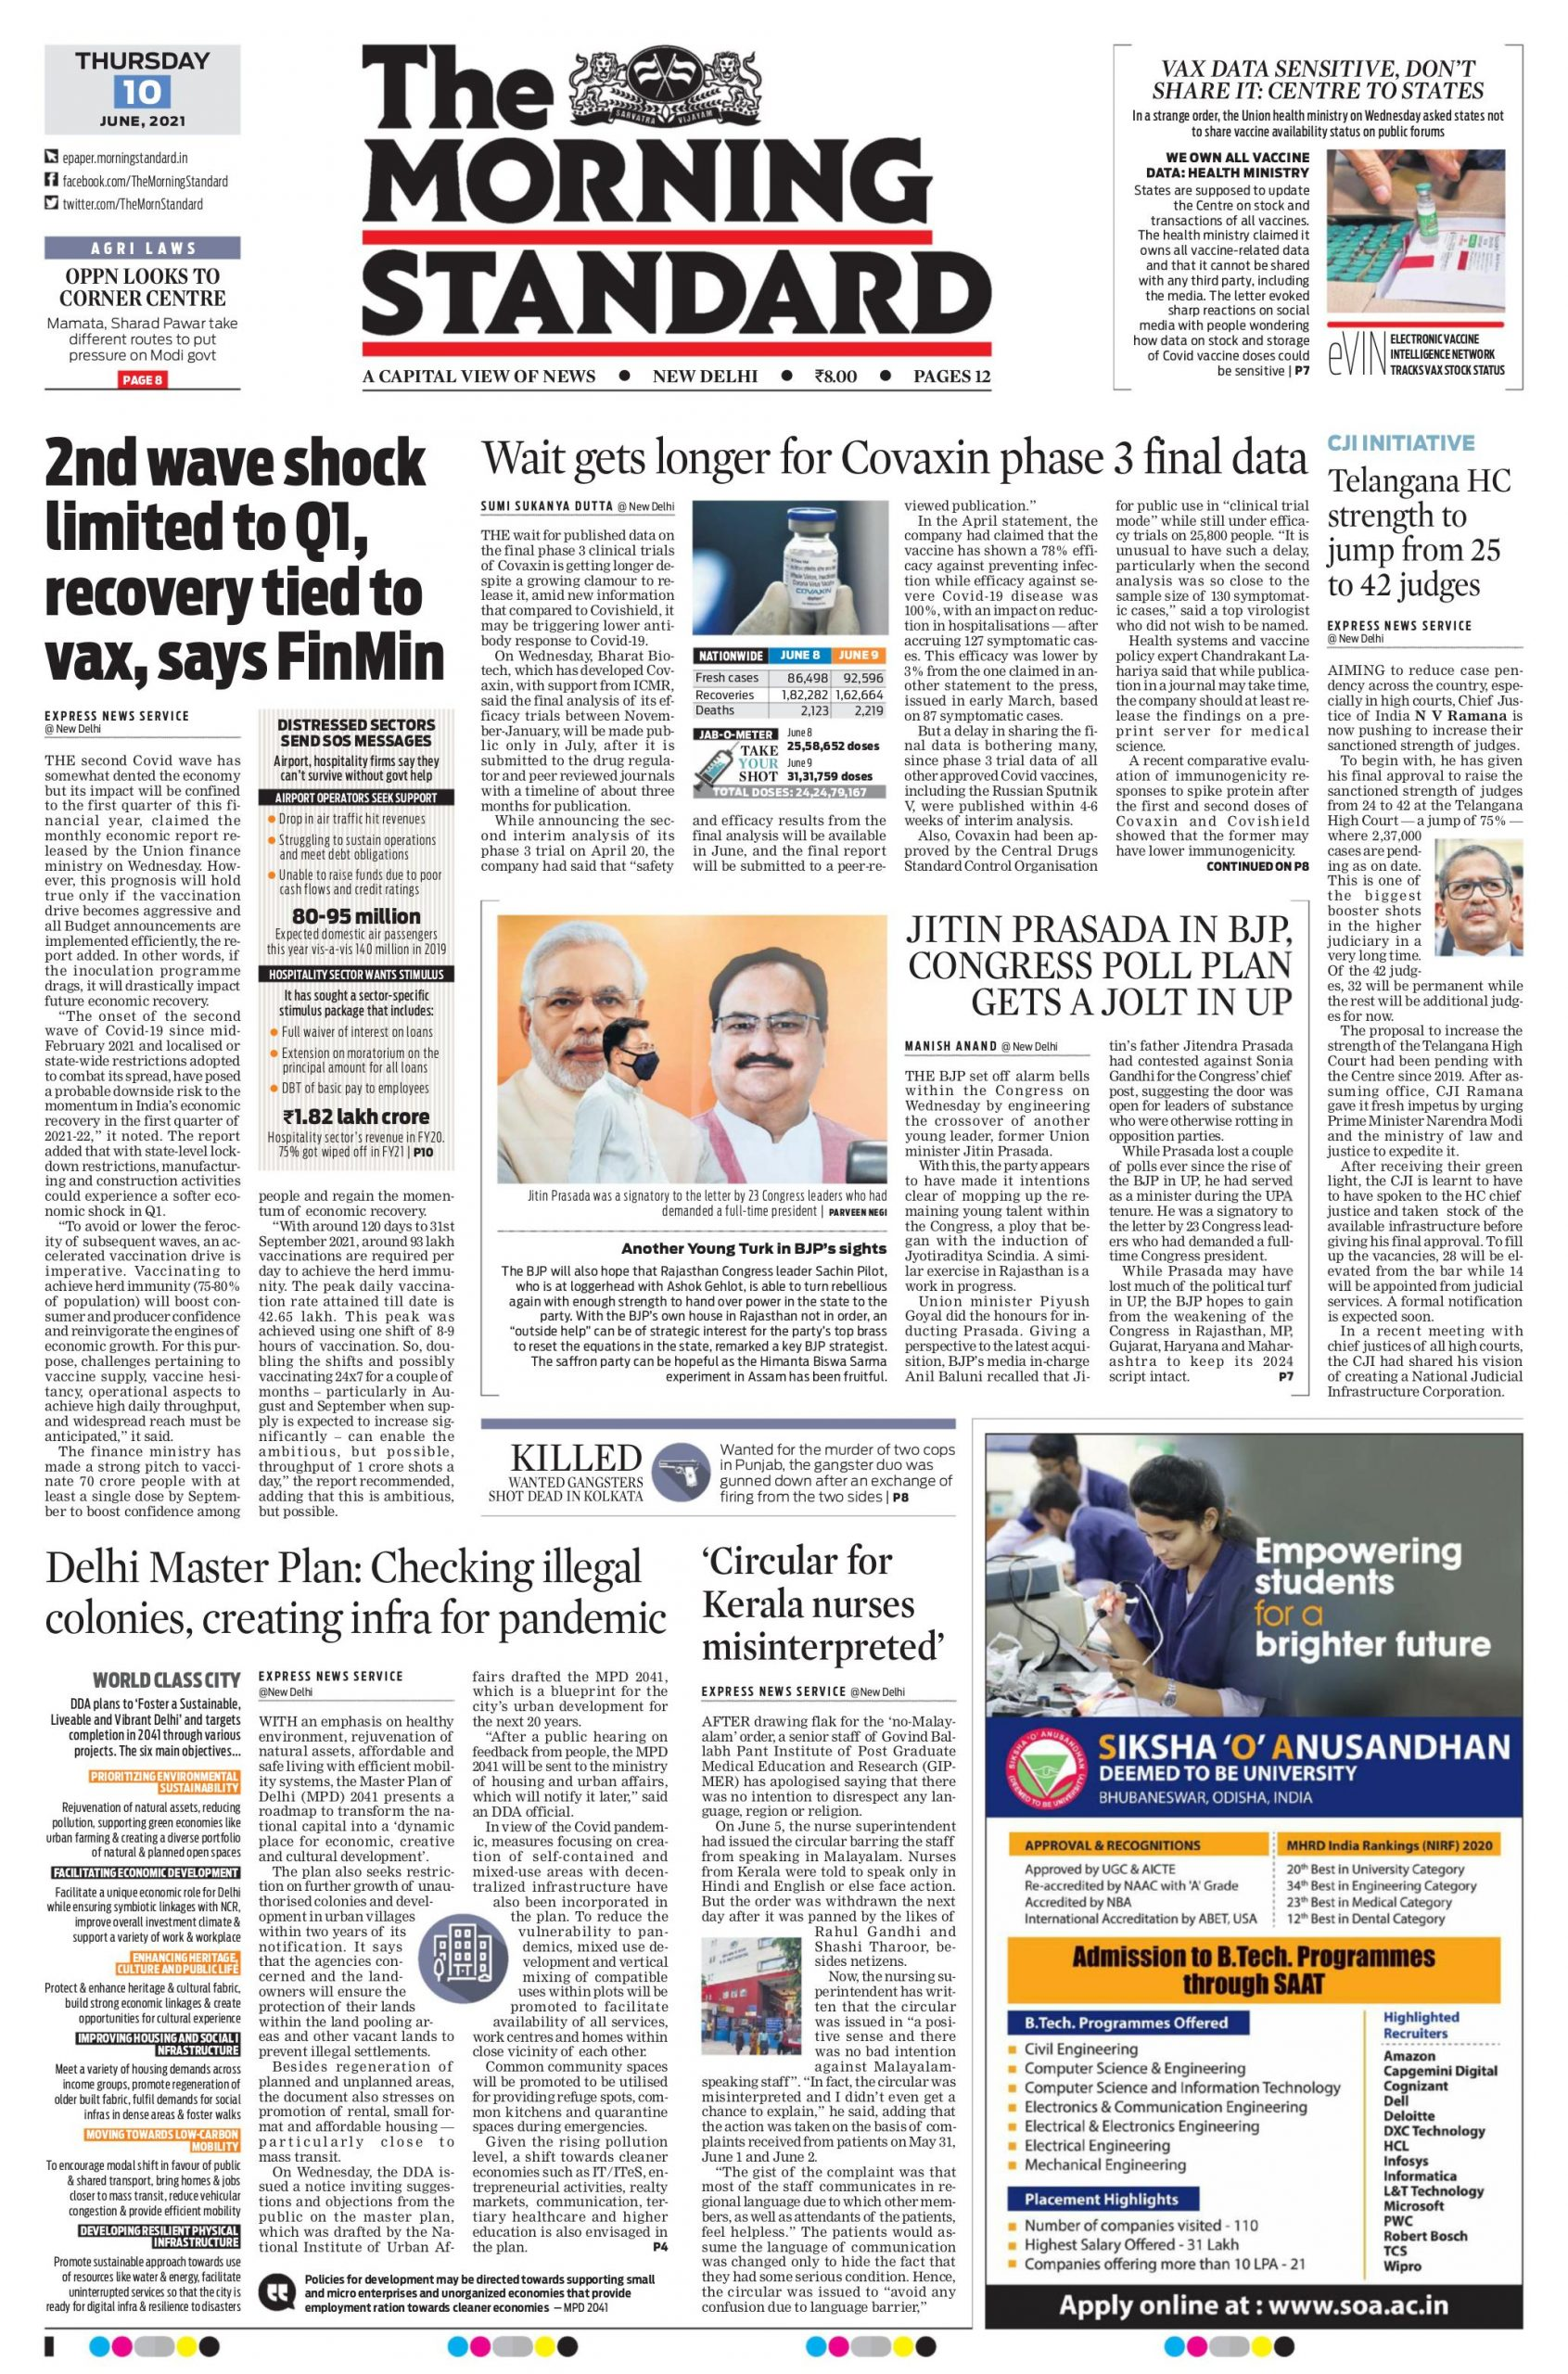 The Morning Standard 10th June 2021